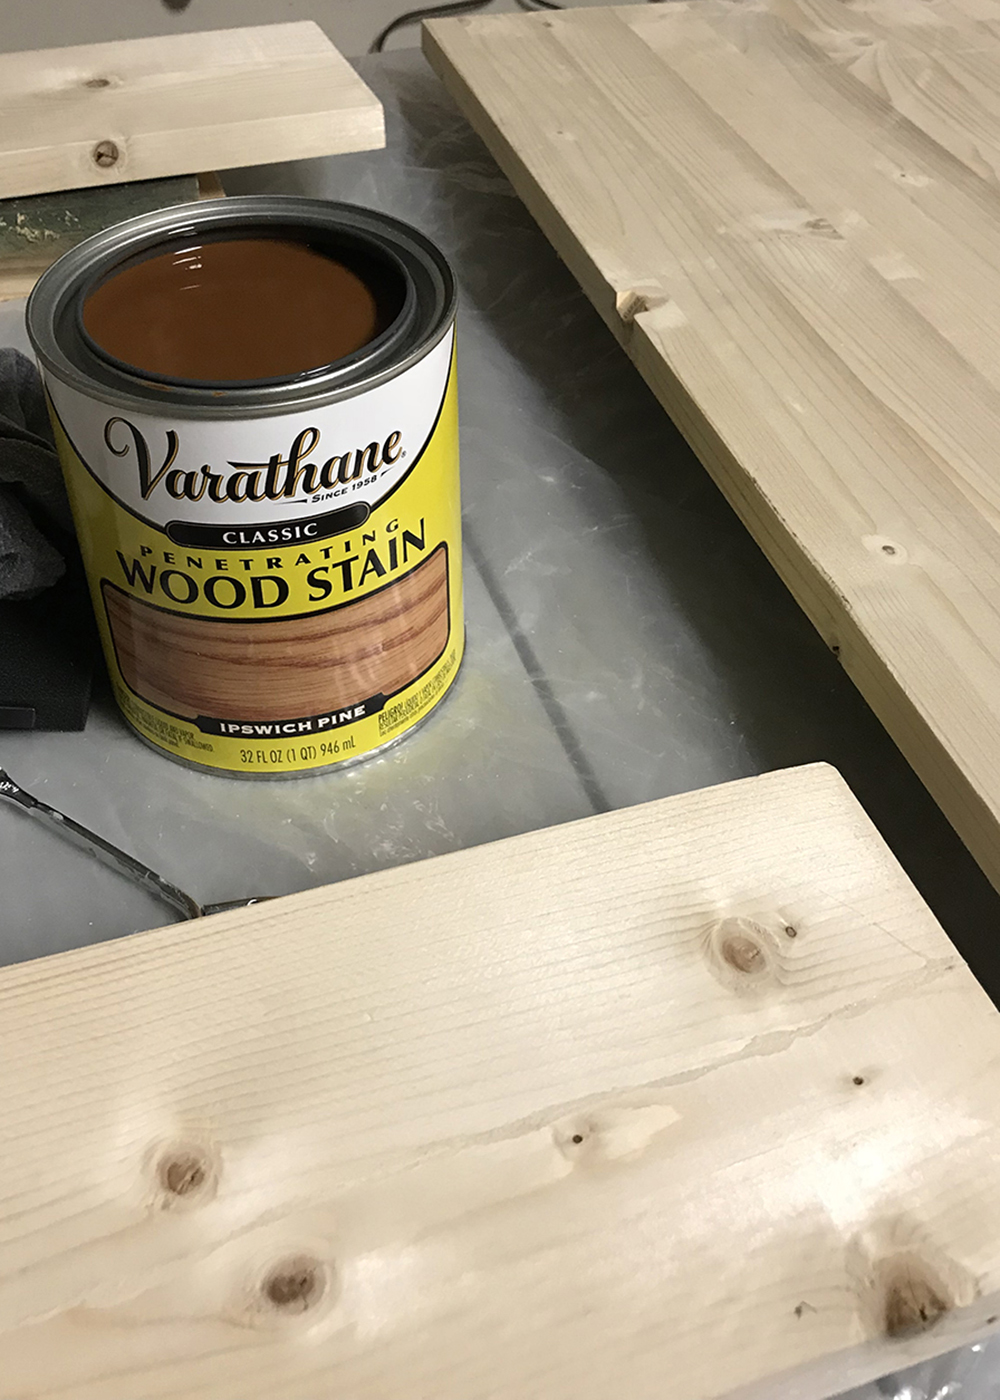 Staining the wood shelves